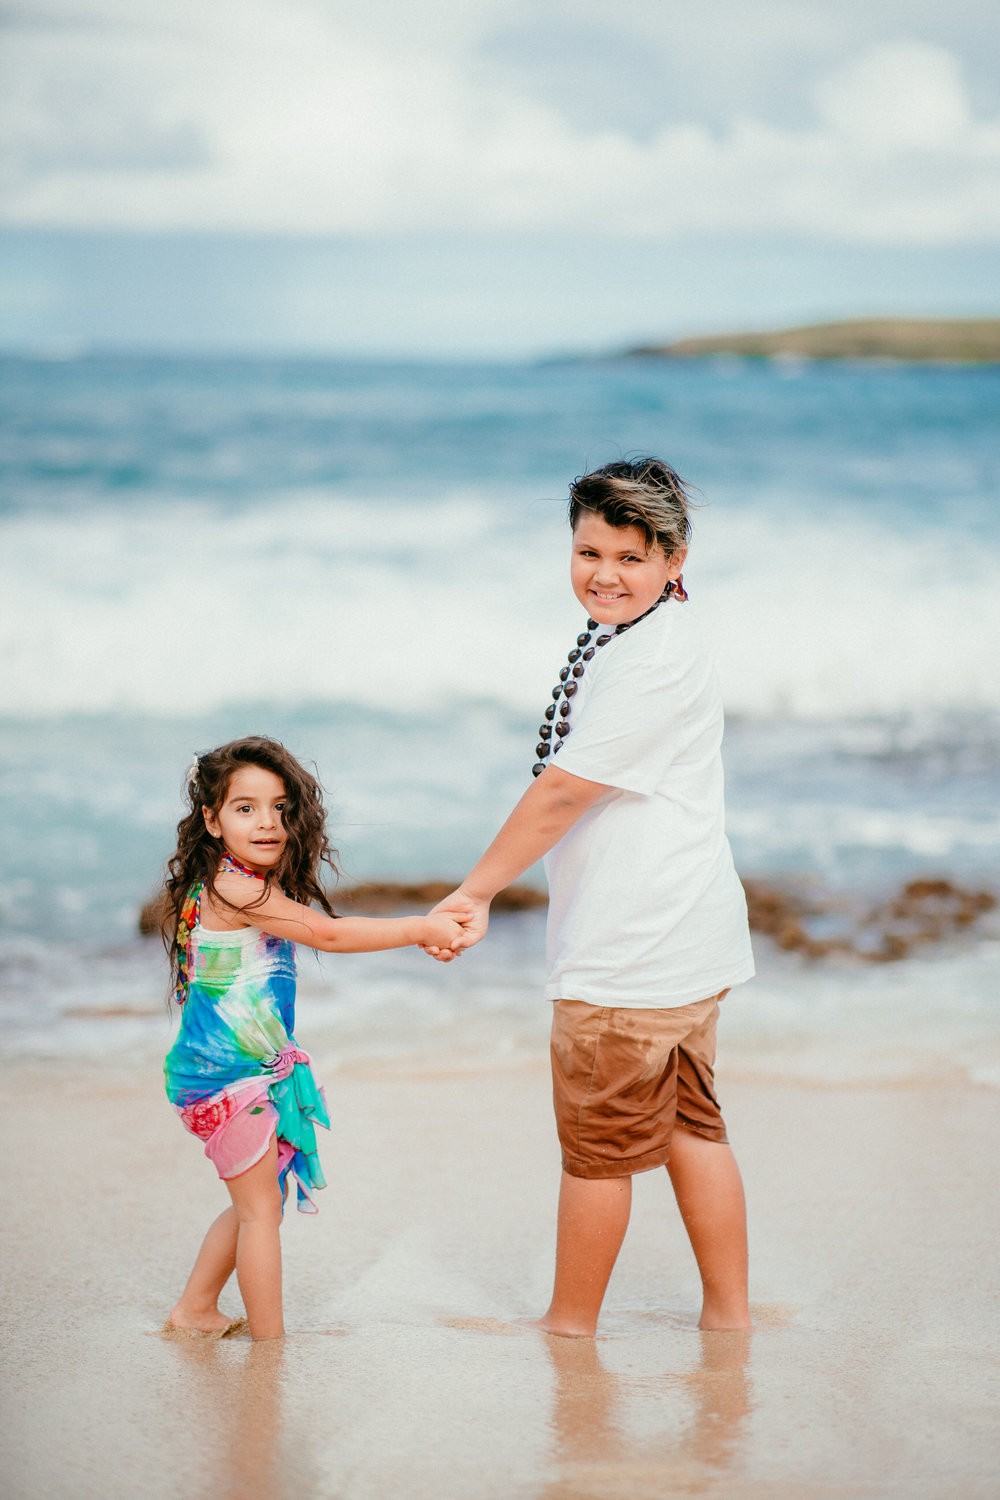 Ketino captured our family vacation fabulously. My little girl didn't want to do anything other than splash in the waves, and Ketino incorporated it into our session and somehow got the whole family involved and I couldn't be happier with how our images turned out